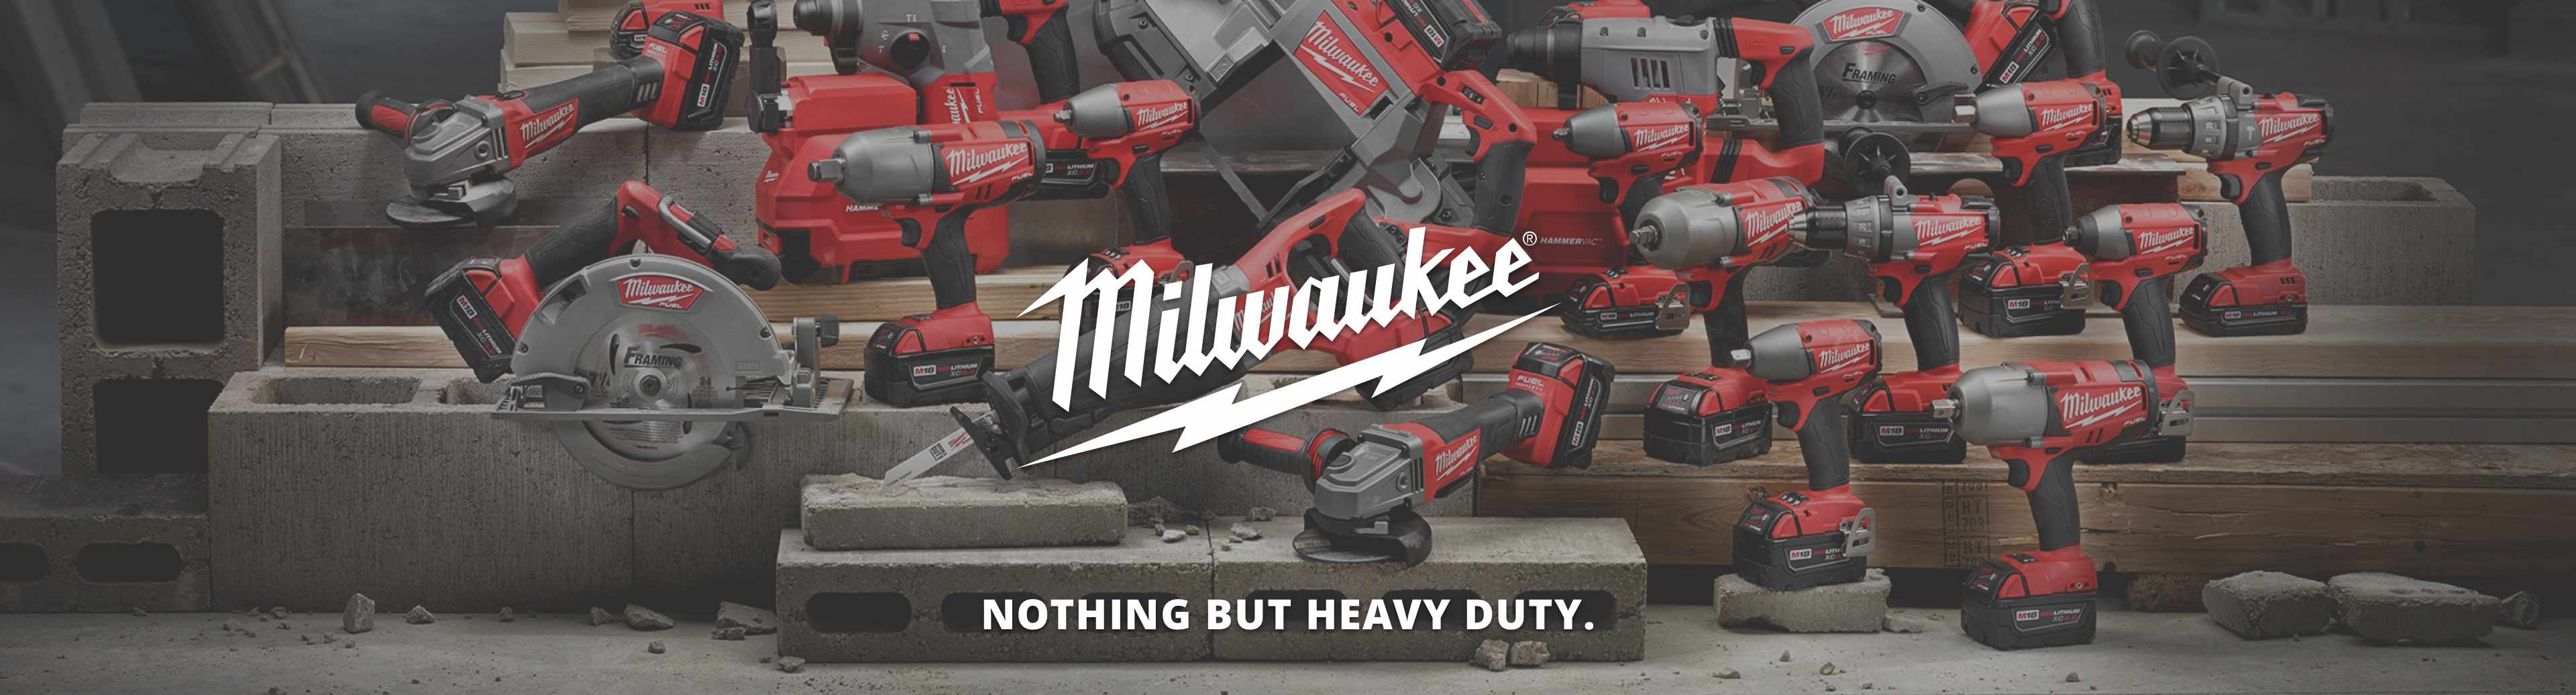 Shop Milwaukee power tools from Vern's Hardware & Rental